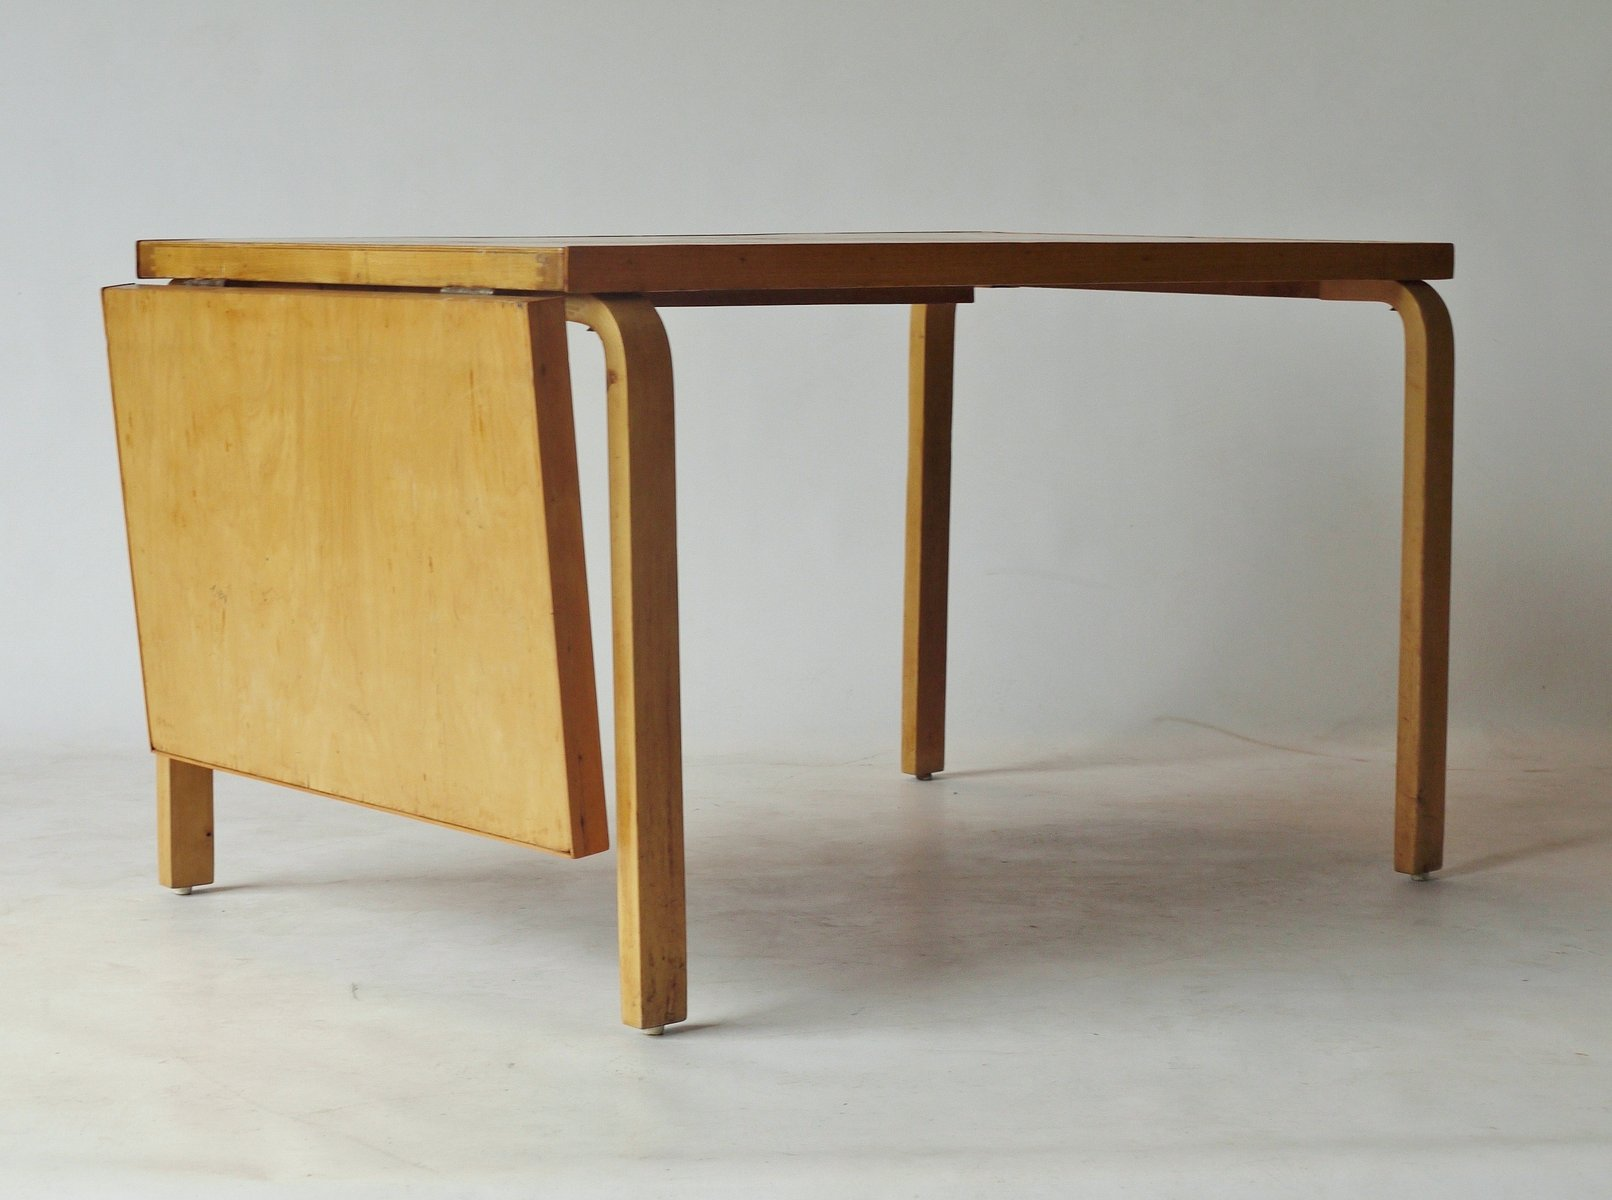 drop leaf extendable dining table by alvar aalto for artek 1940s - Dining Table Leaf